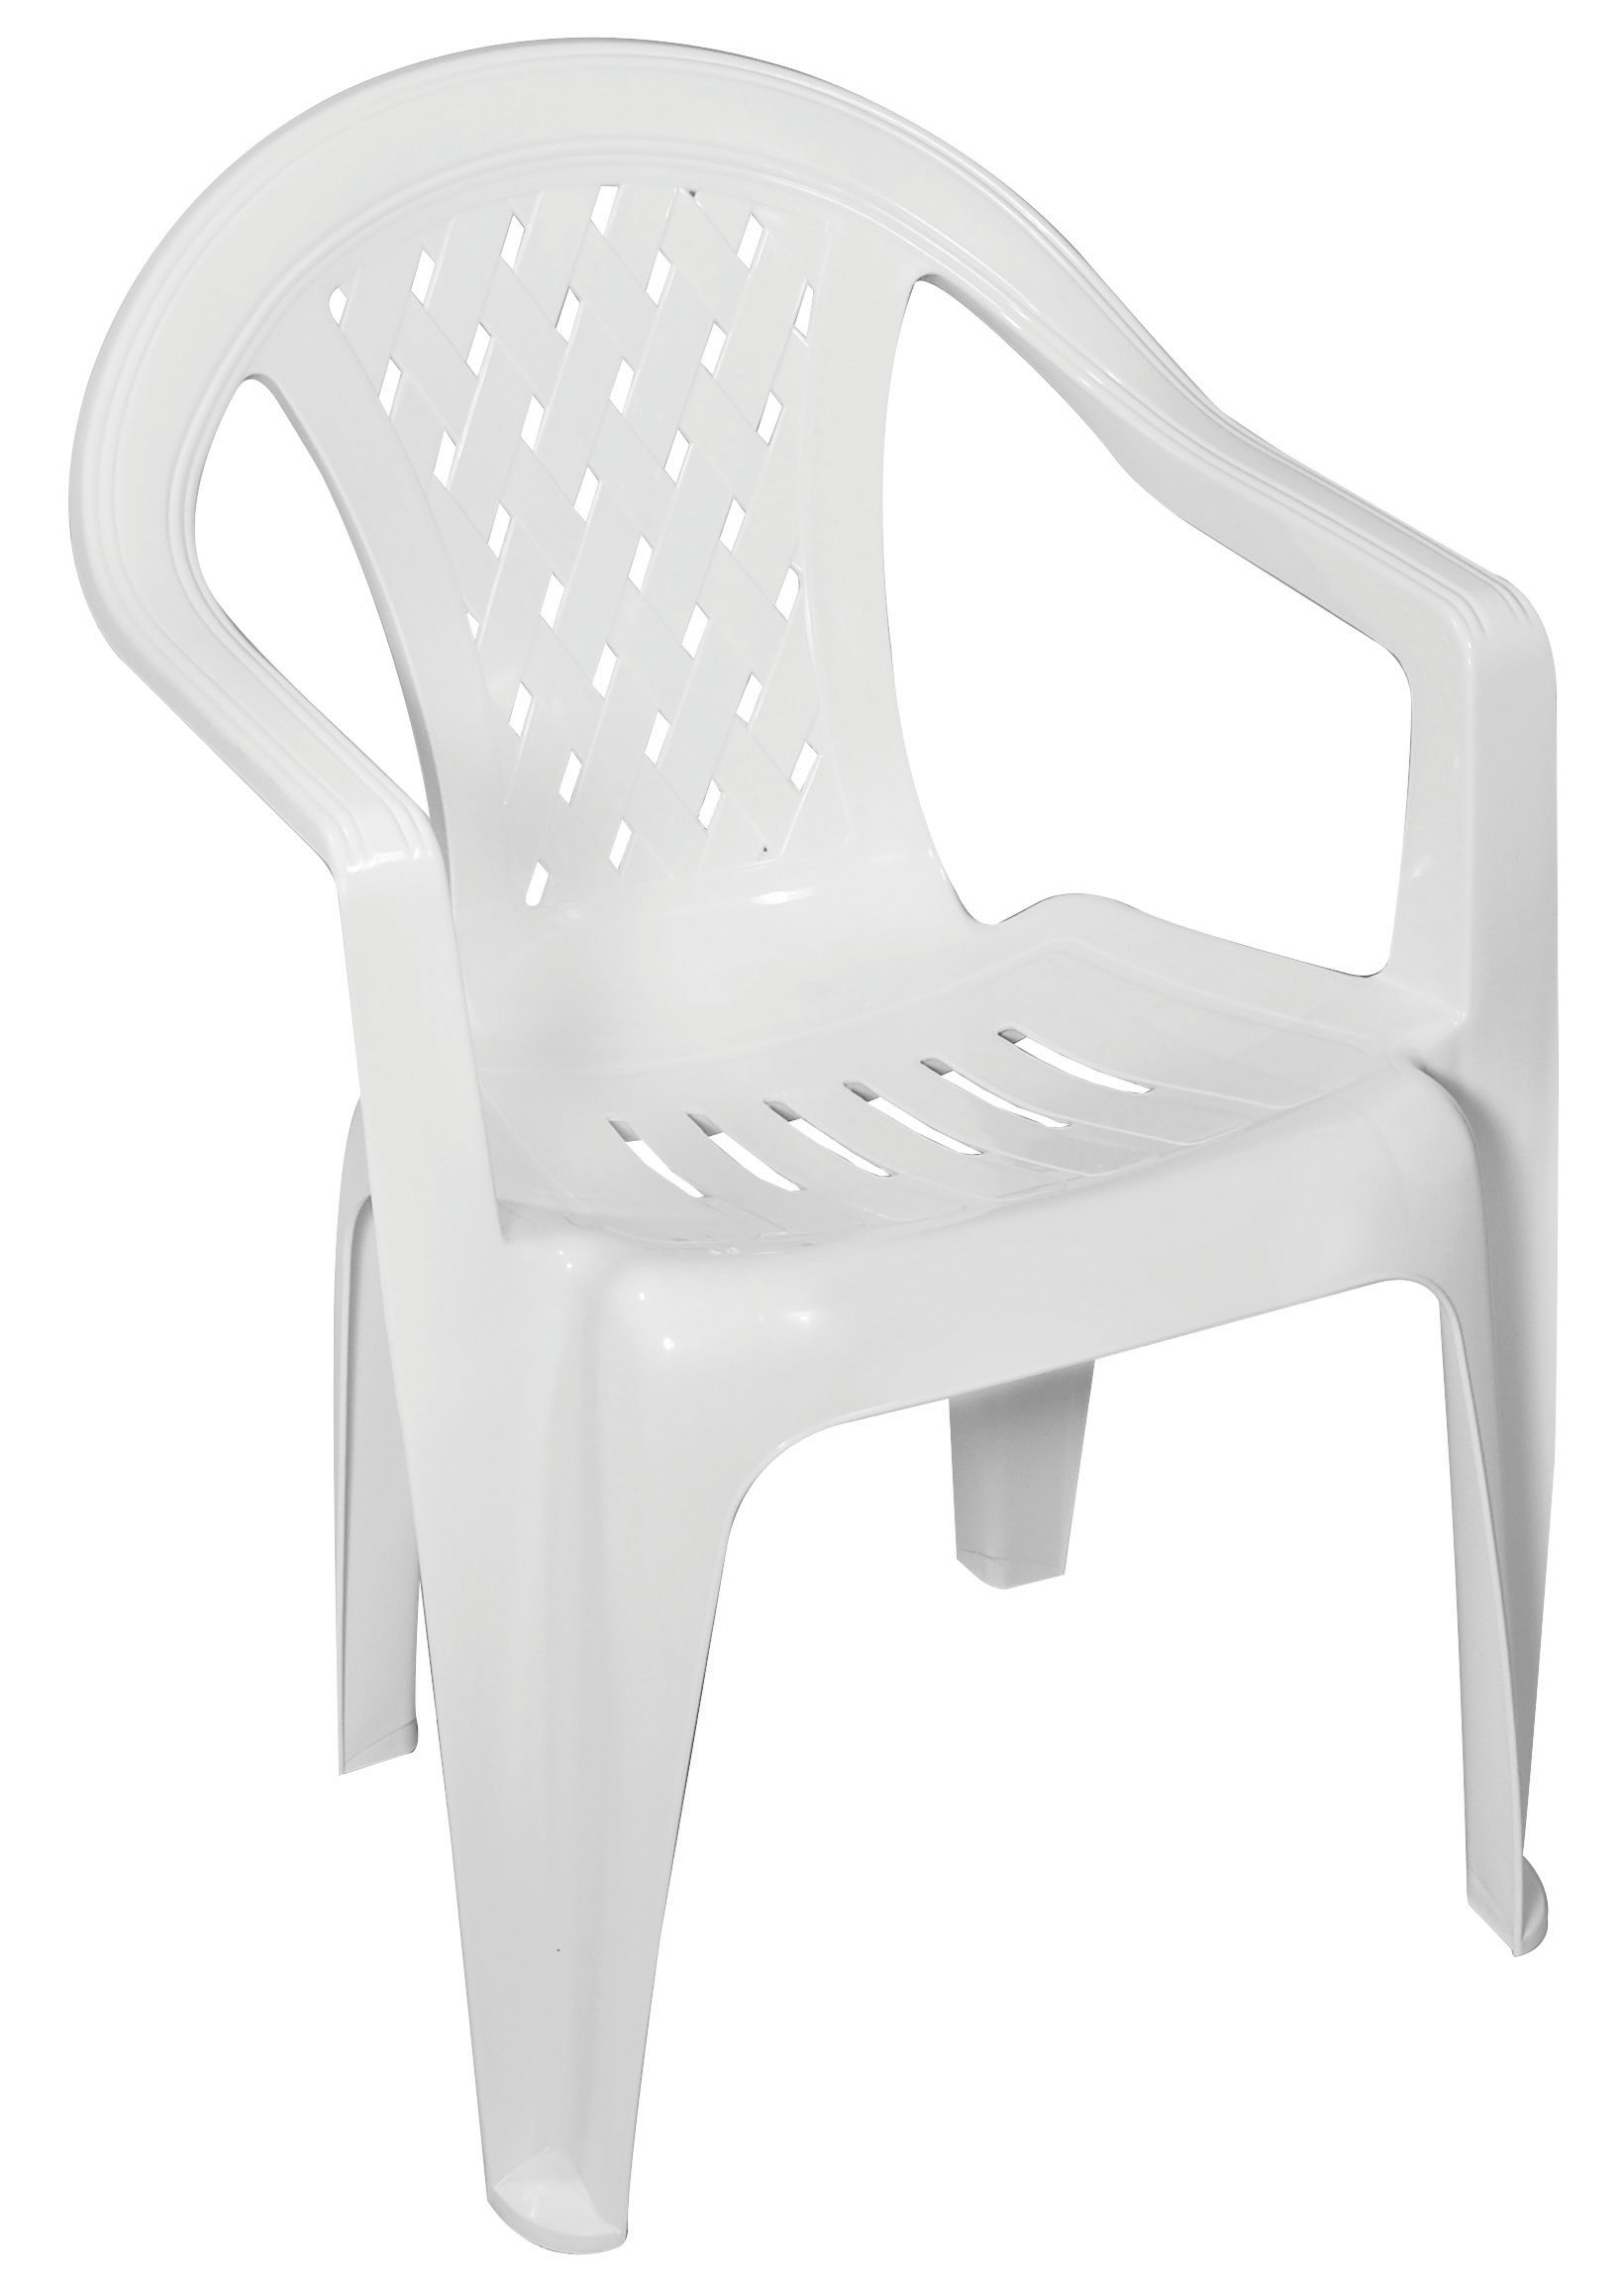 Low Back Lawn Chairs Gracious Living Trellis Low Back Chair White Outdoor